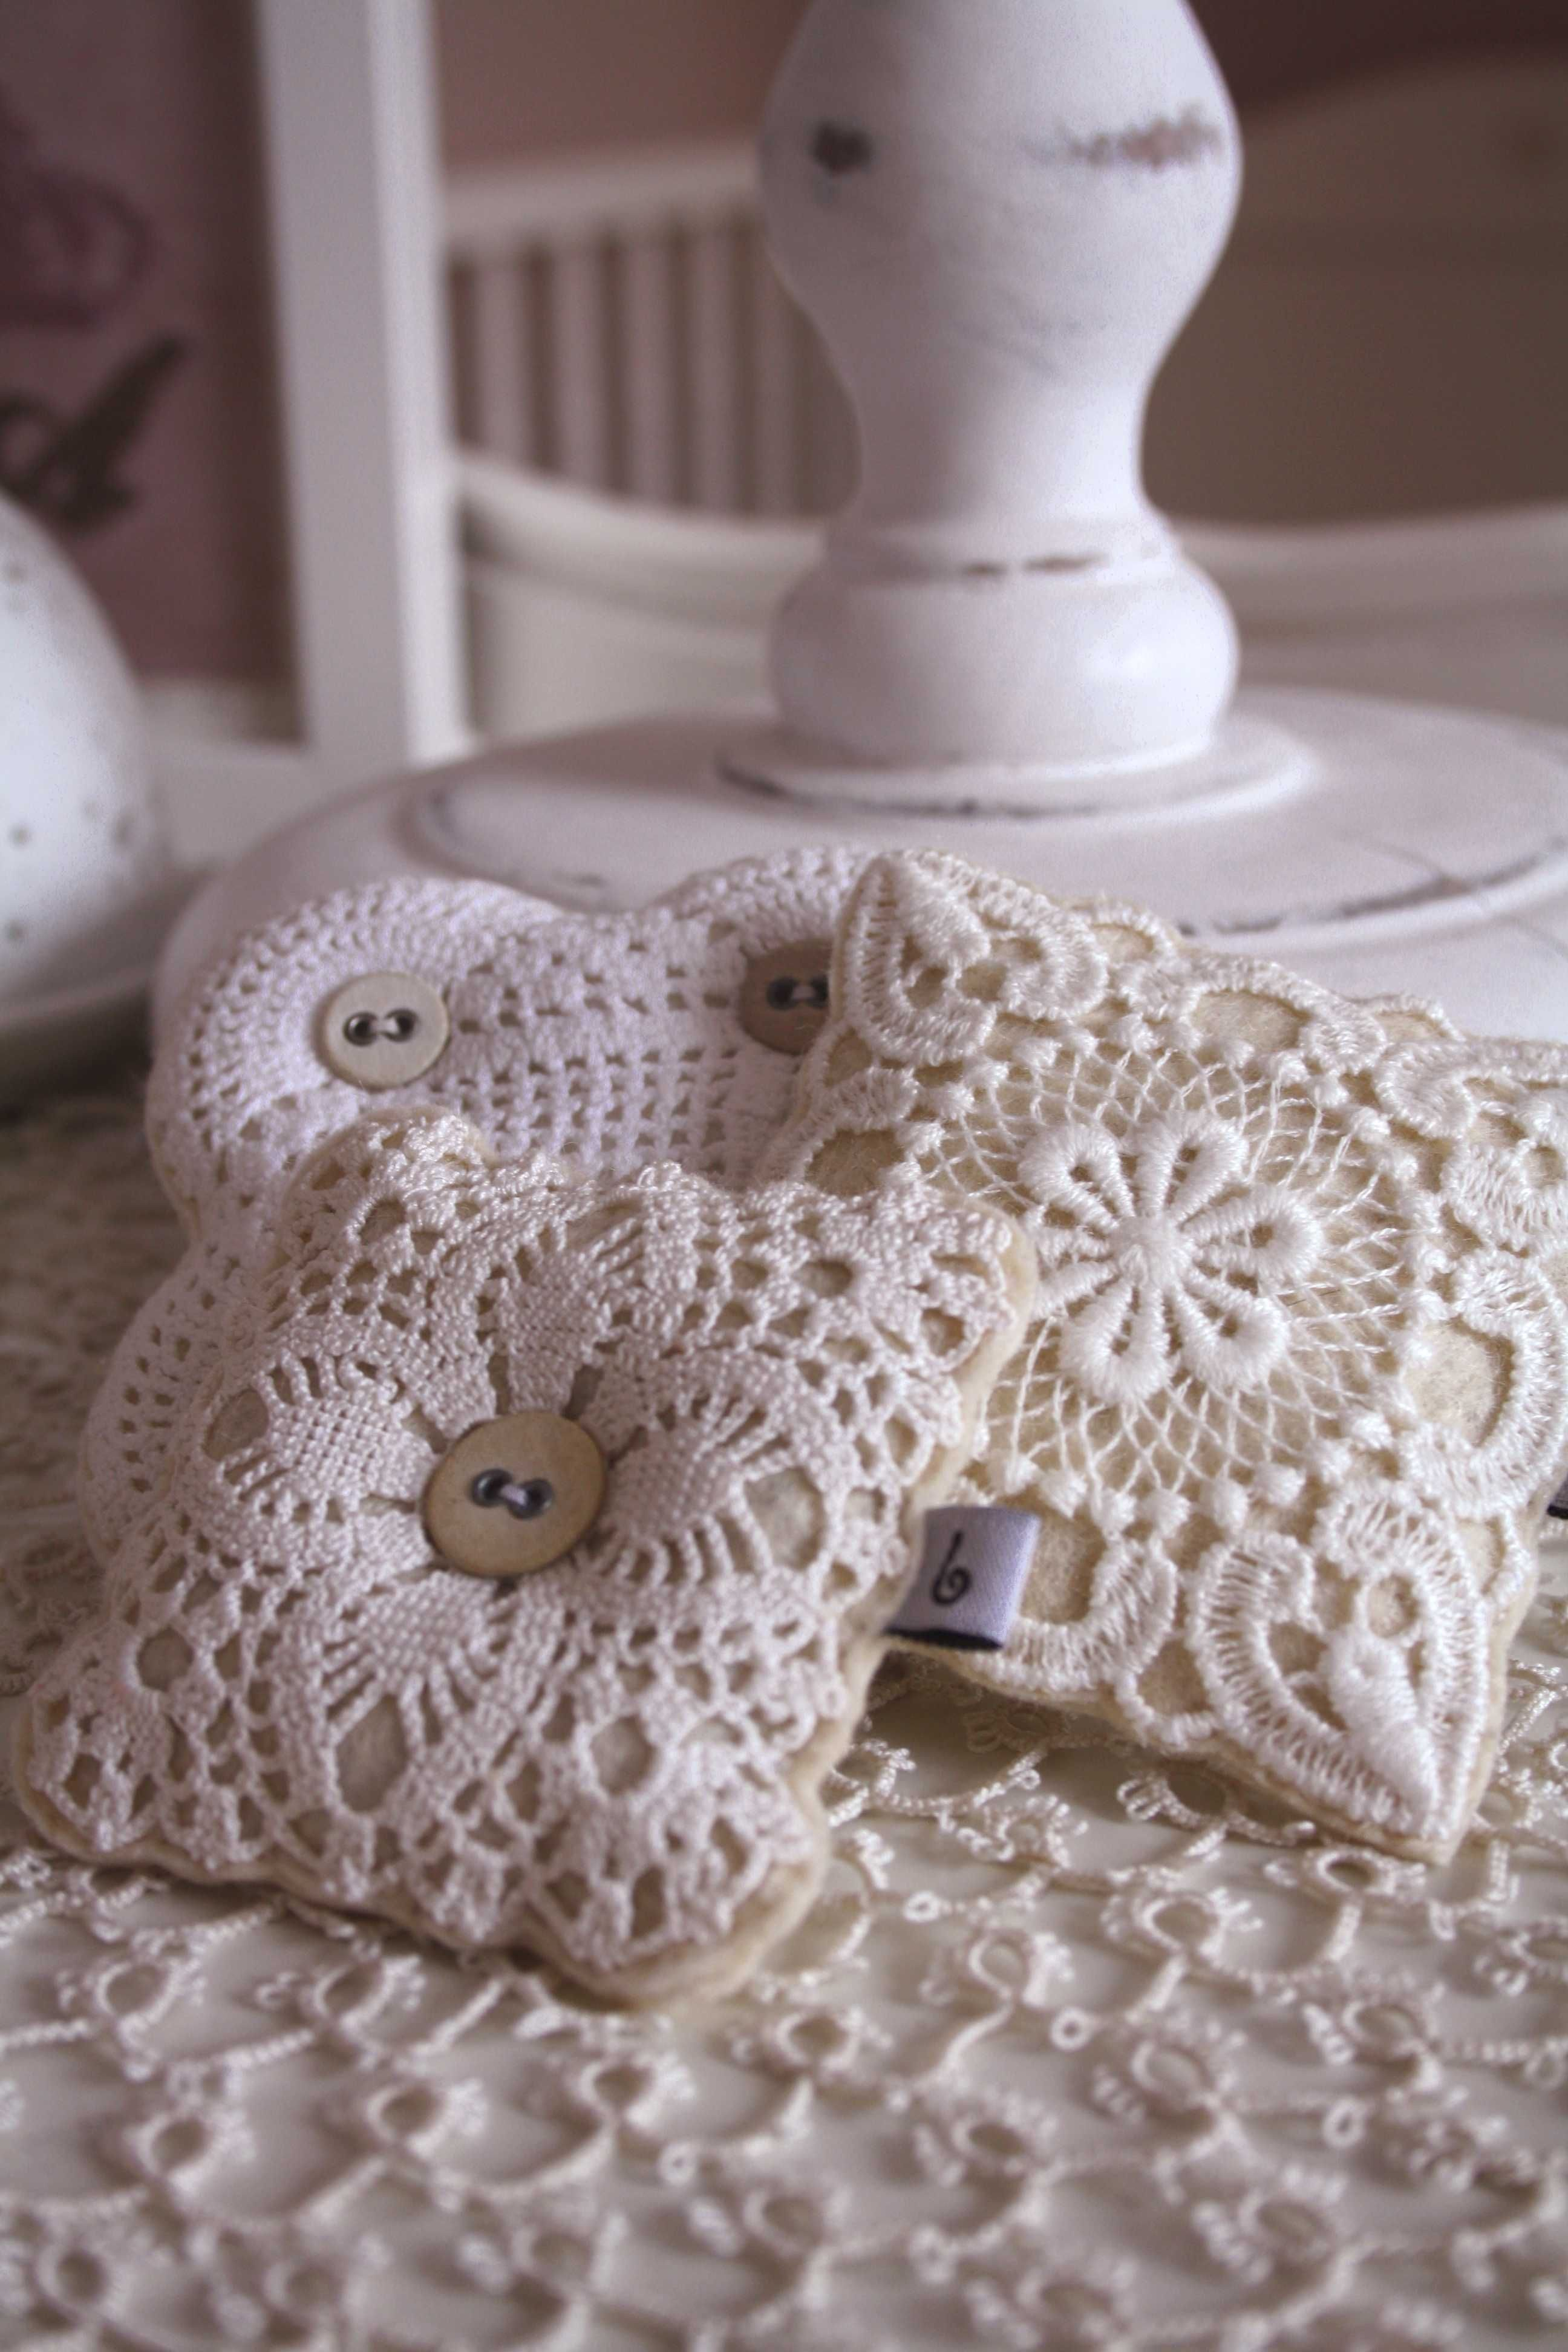 Lavender filled vintage laces make them into pincushions diy